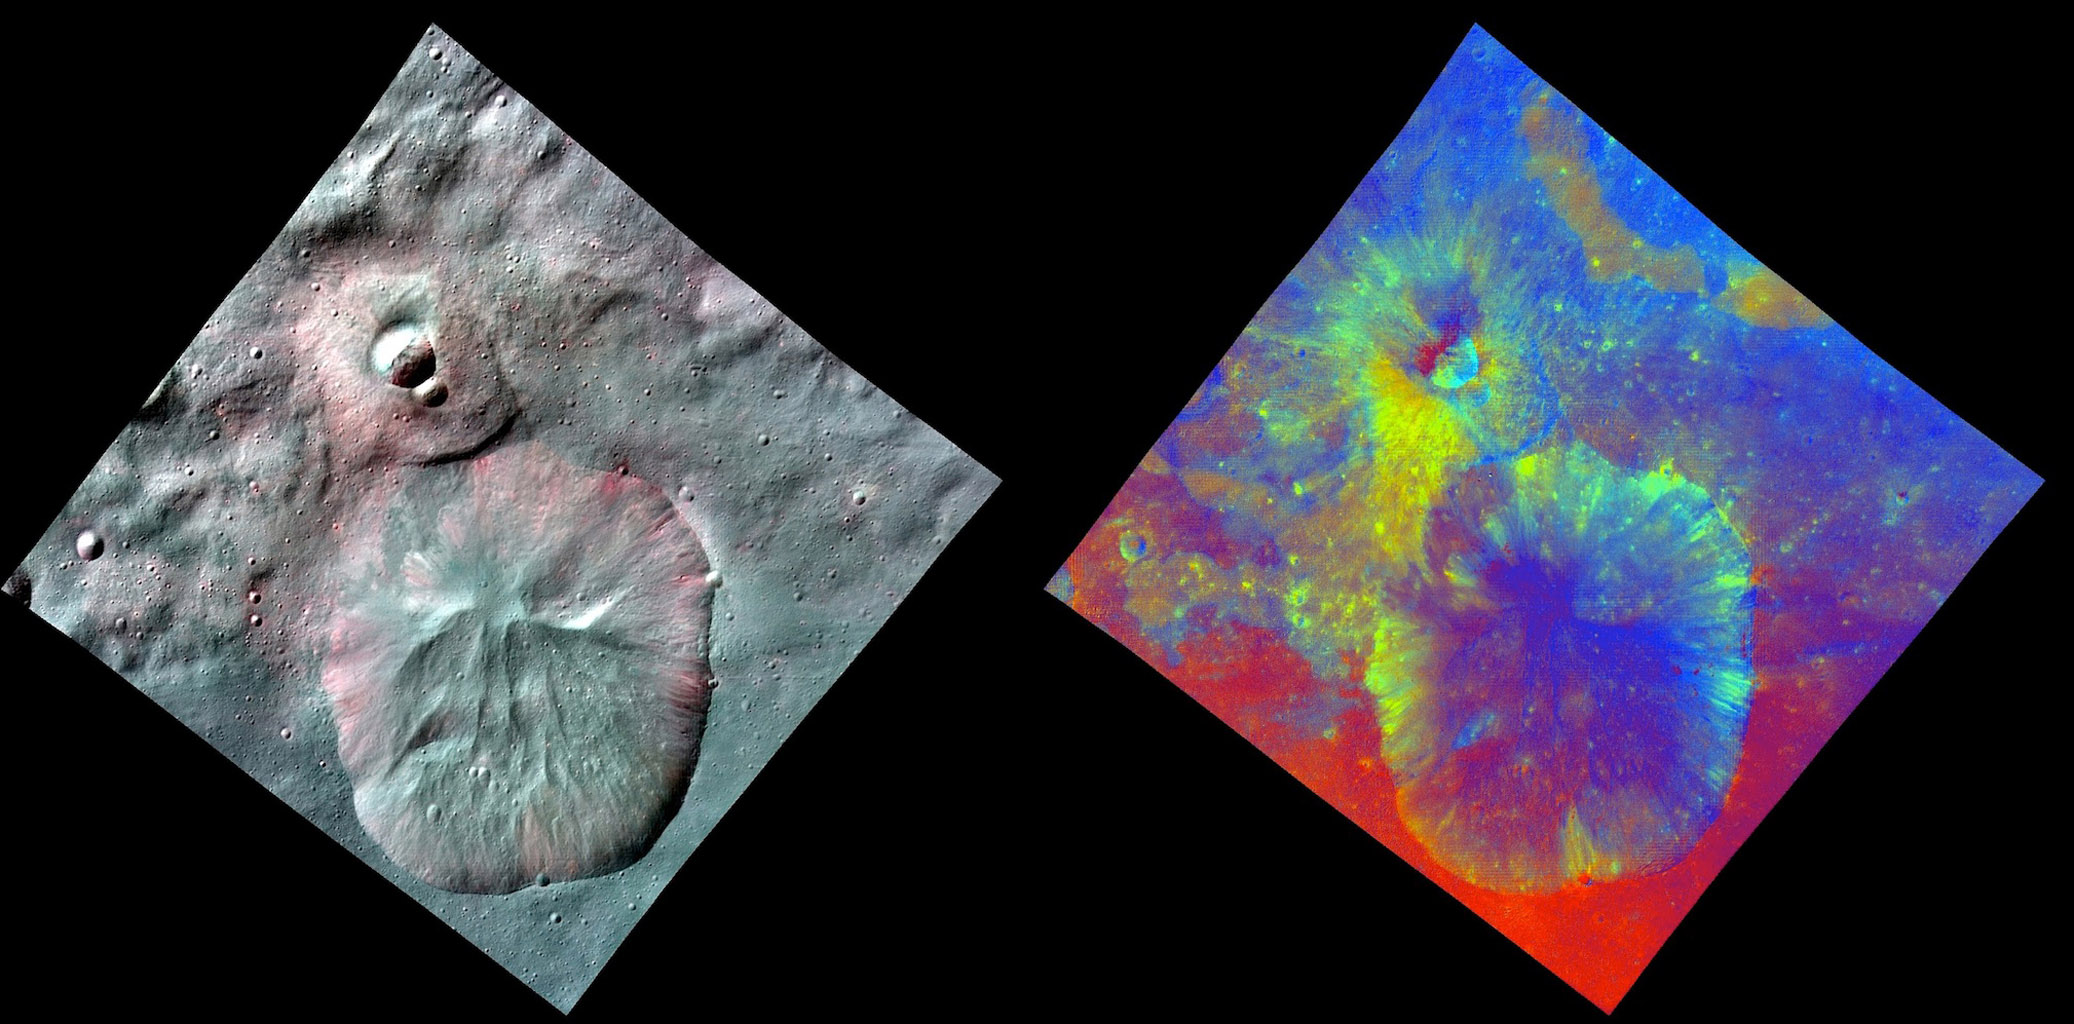 This image combines two separate views of the giant asteroid Vesta obtained by NASA's Dawn spacecraft. The data reveal a world of many varied, well-separated layers and ingredients.